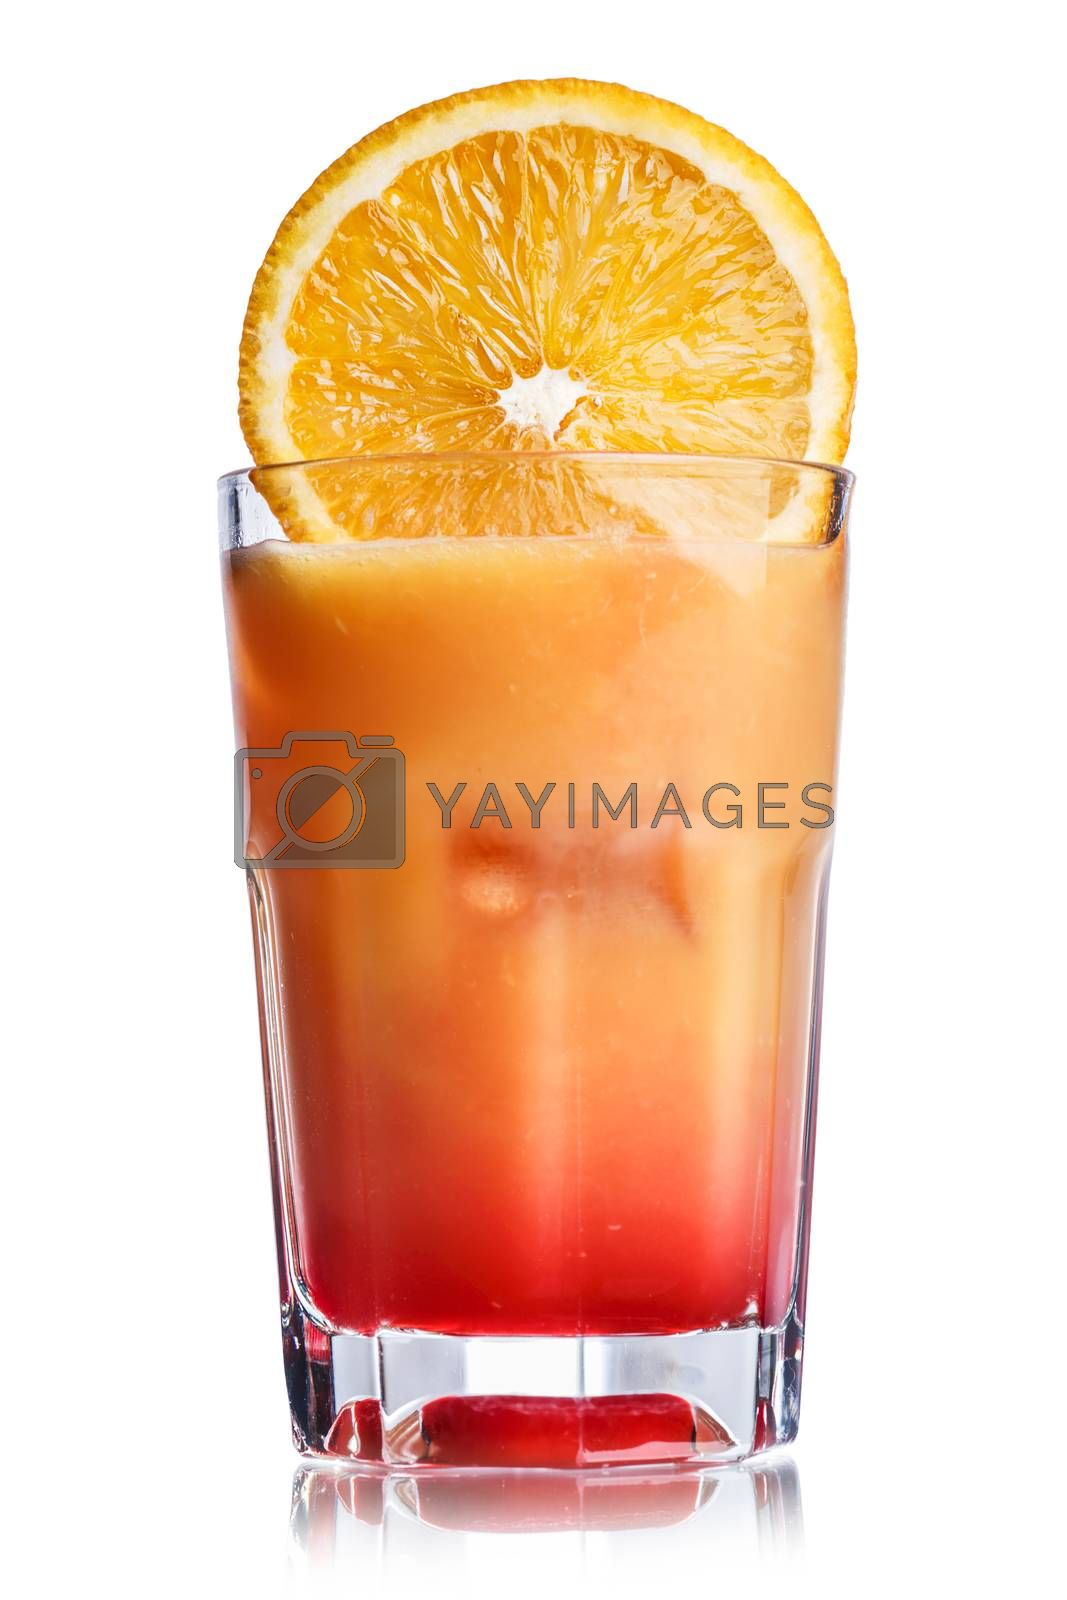 Royalty free image of Tequila sunrise by maxsol